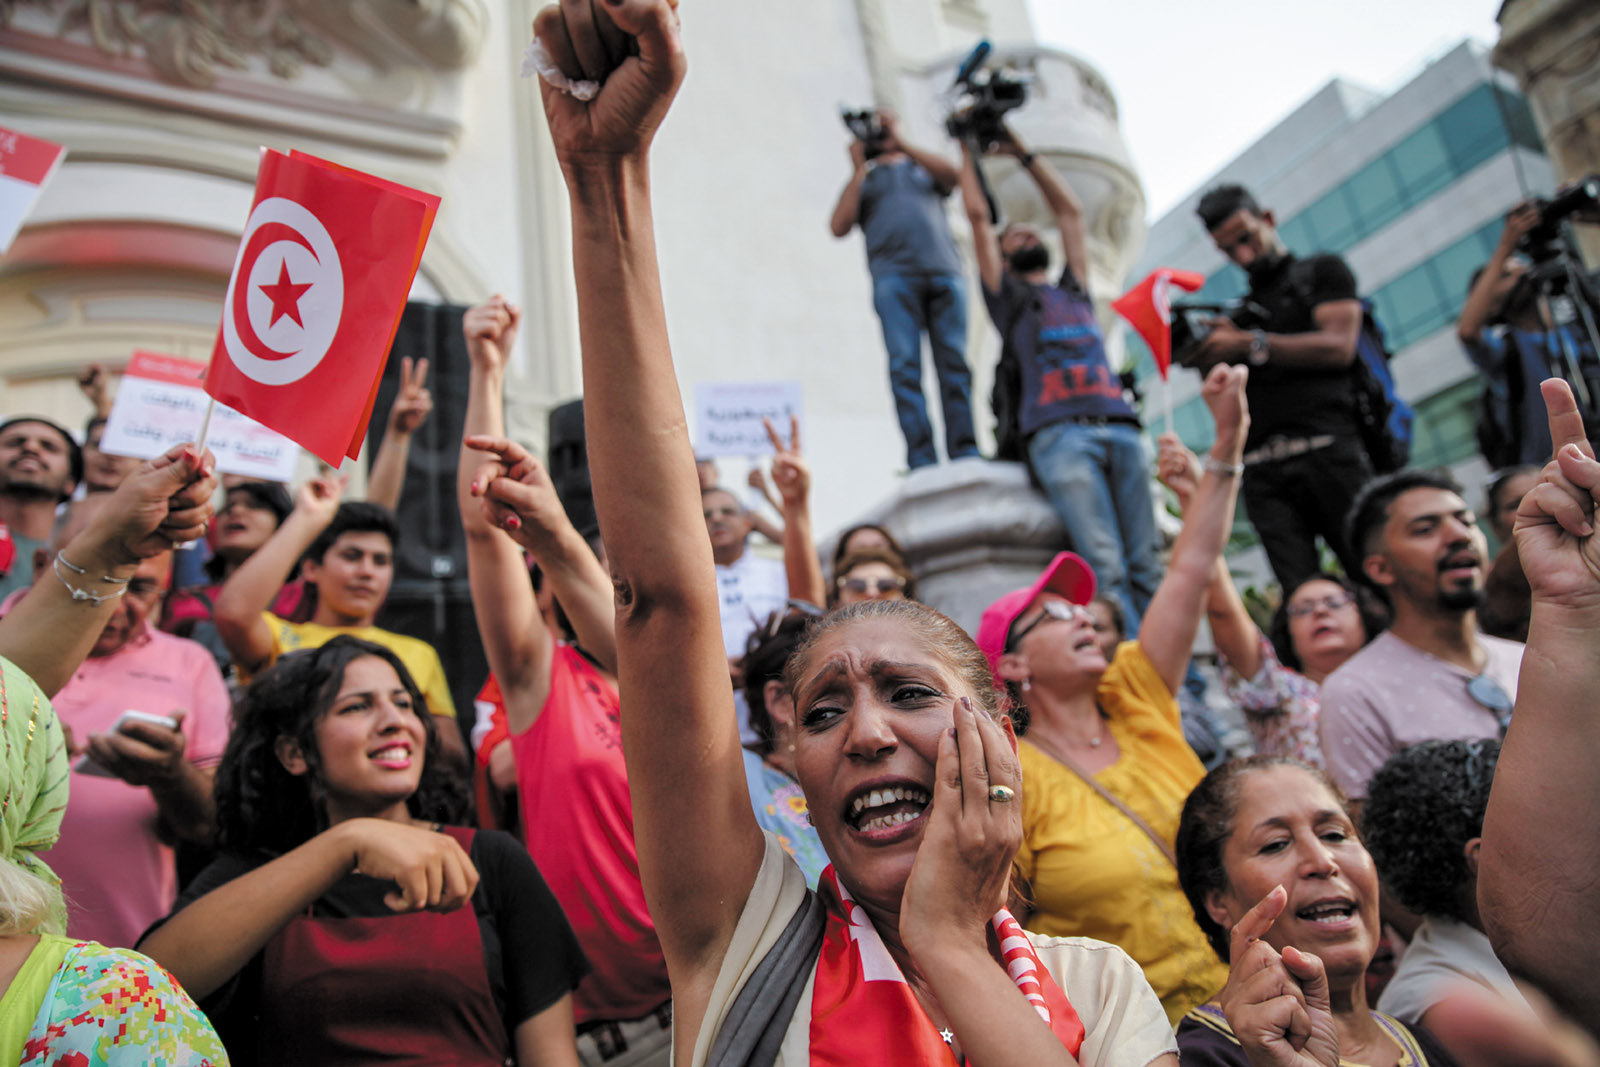 Demonstrators on National Women's Day, Tunis, August 13, 2018. Earlier that day President Beji Caid Essebsi had announced that an inheritance equality bill would be submitted to parliament.